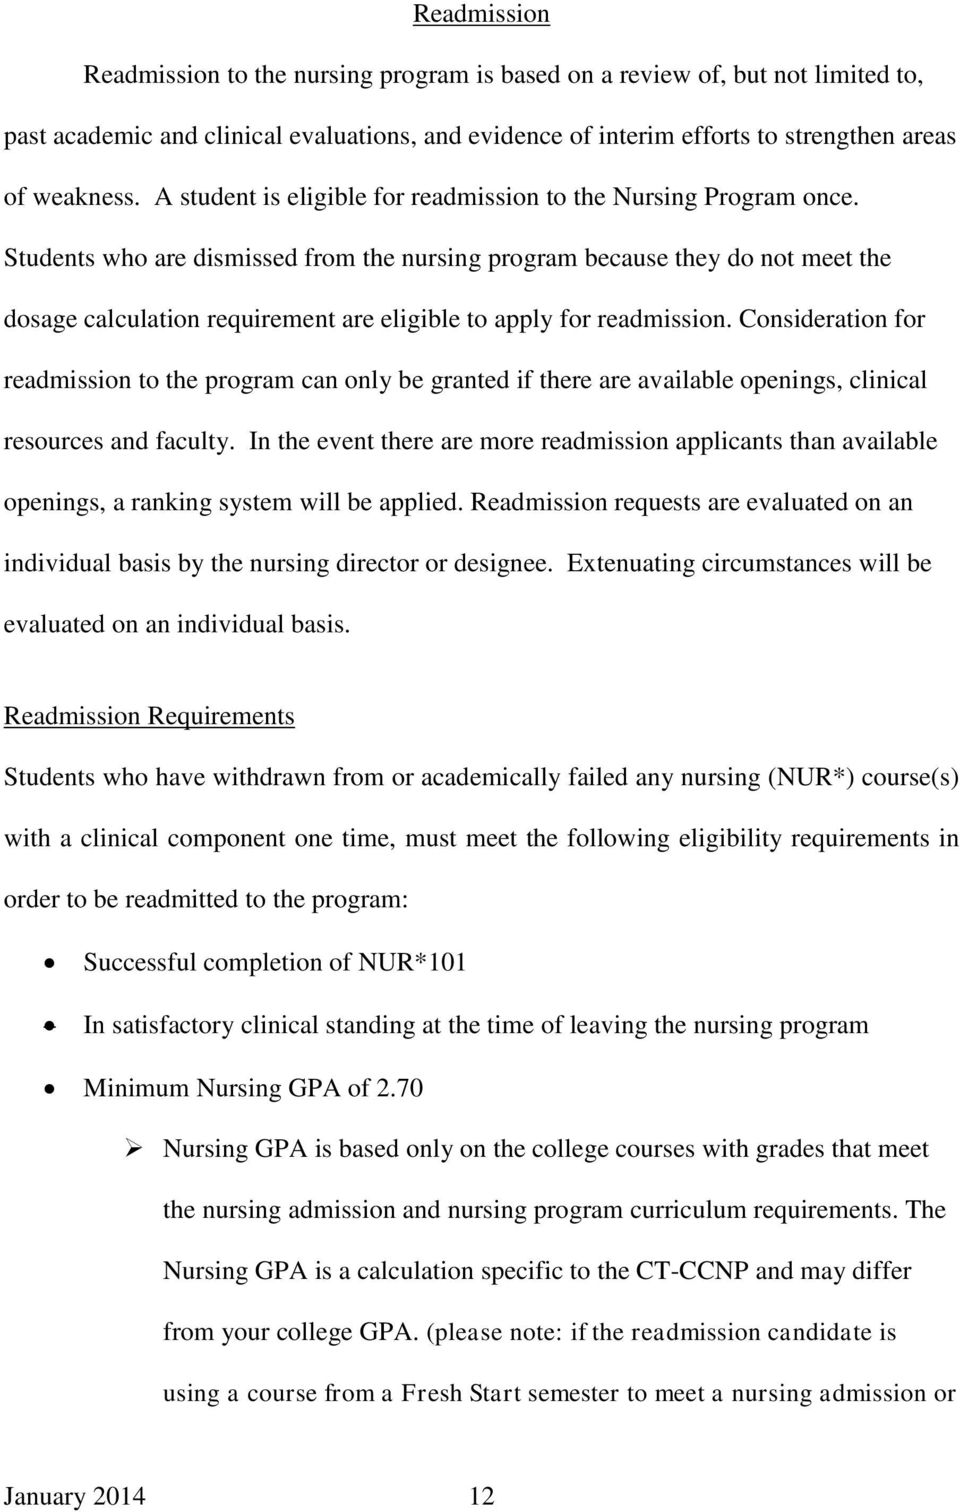 Students who are dismissed from the nursing program because they do not meet the dosage calculation requirement are eligible to apply for readmission.